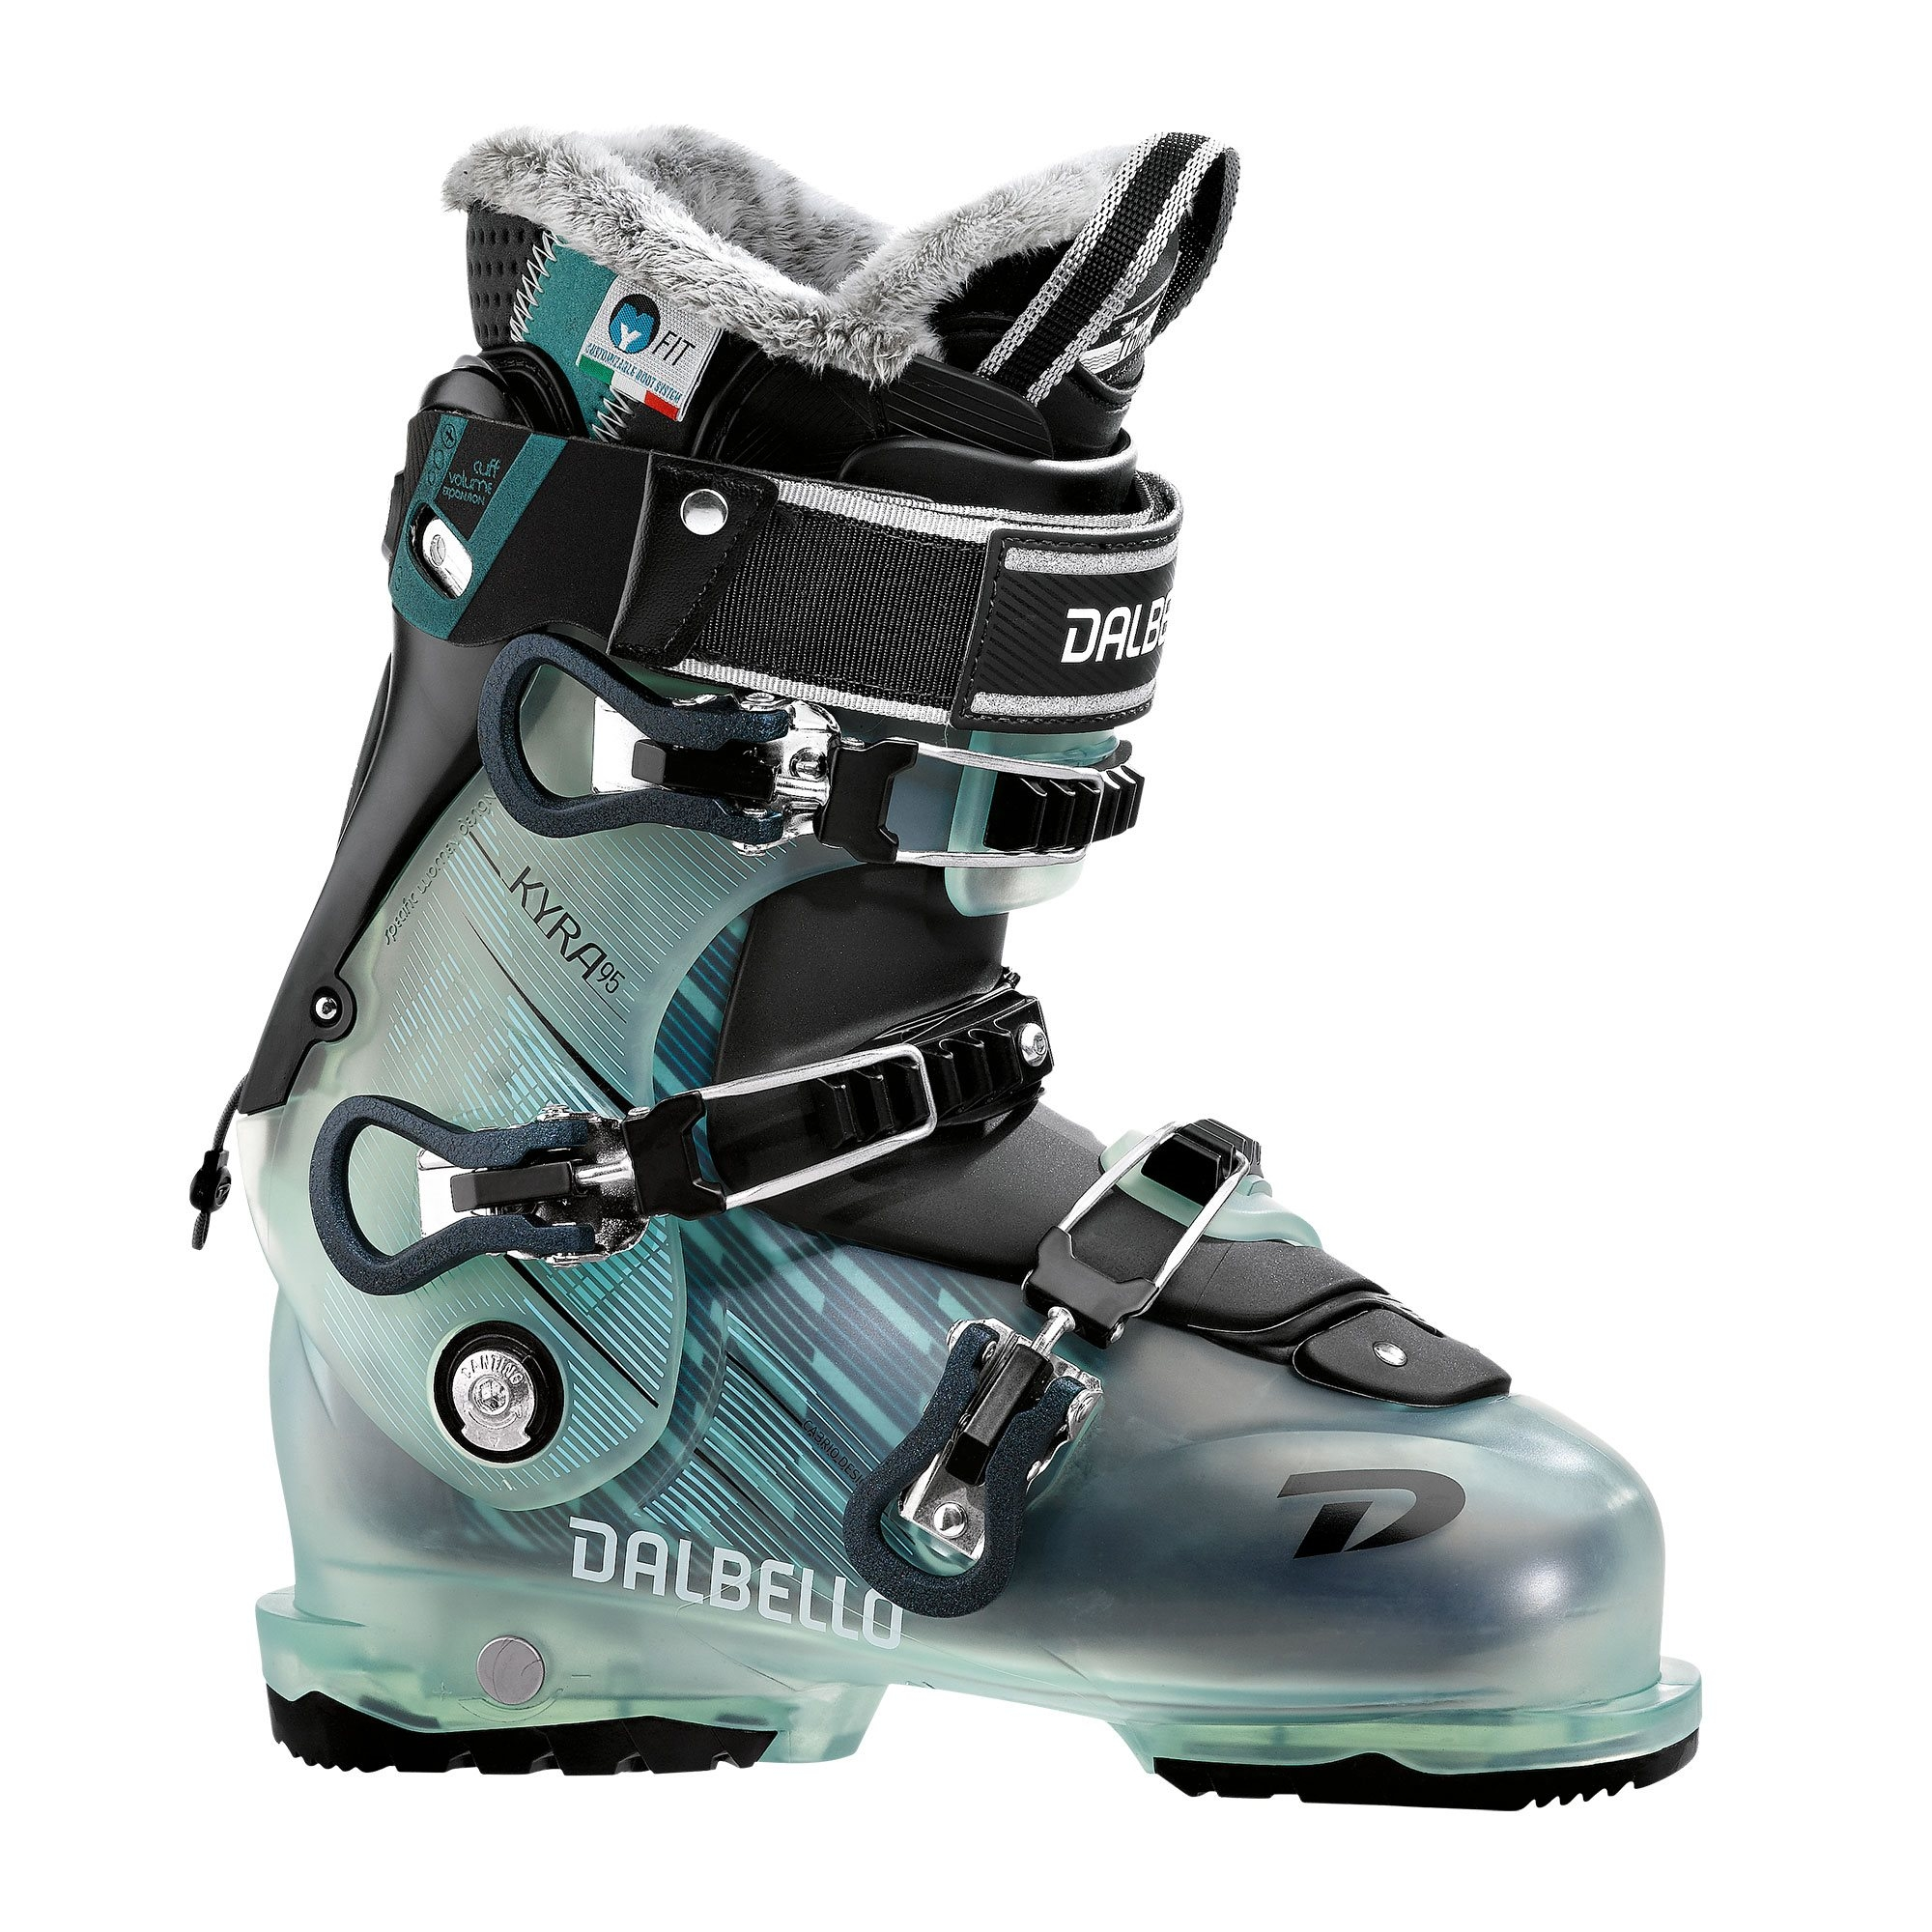 Dalbello Kyra 95 Ski Boot Glacier Blue/Black 2018